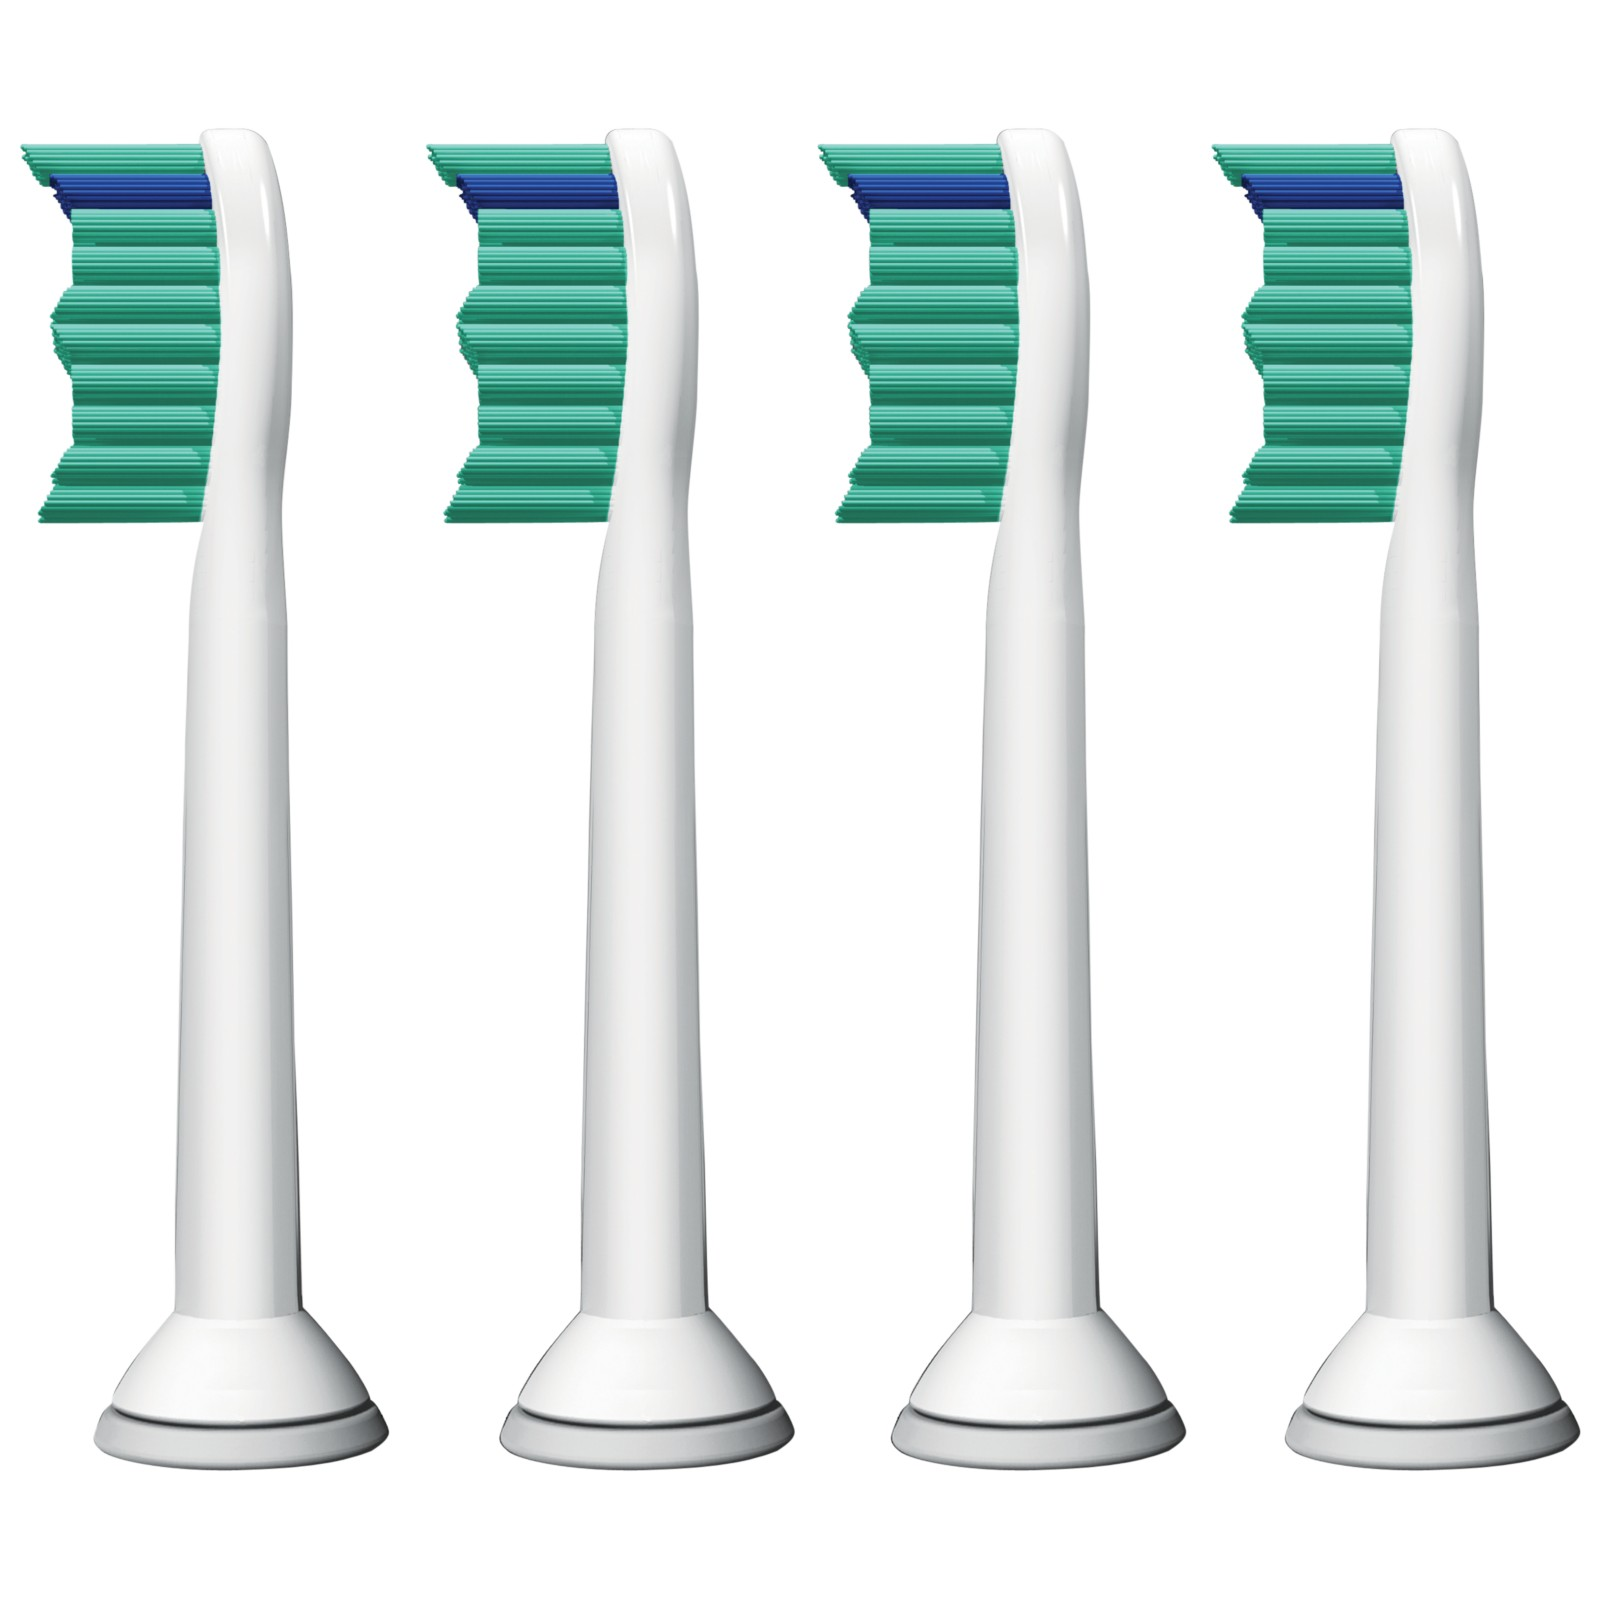 Philips Sonicare HX6014/26 Pro Results Brush Heads